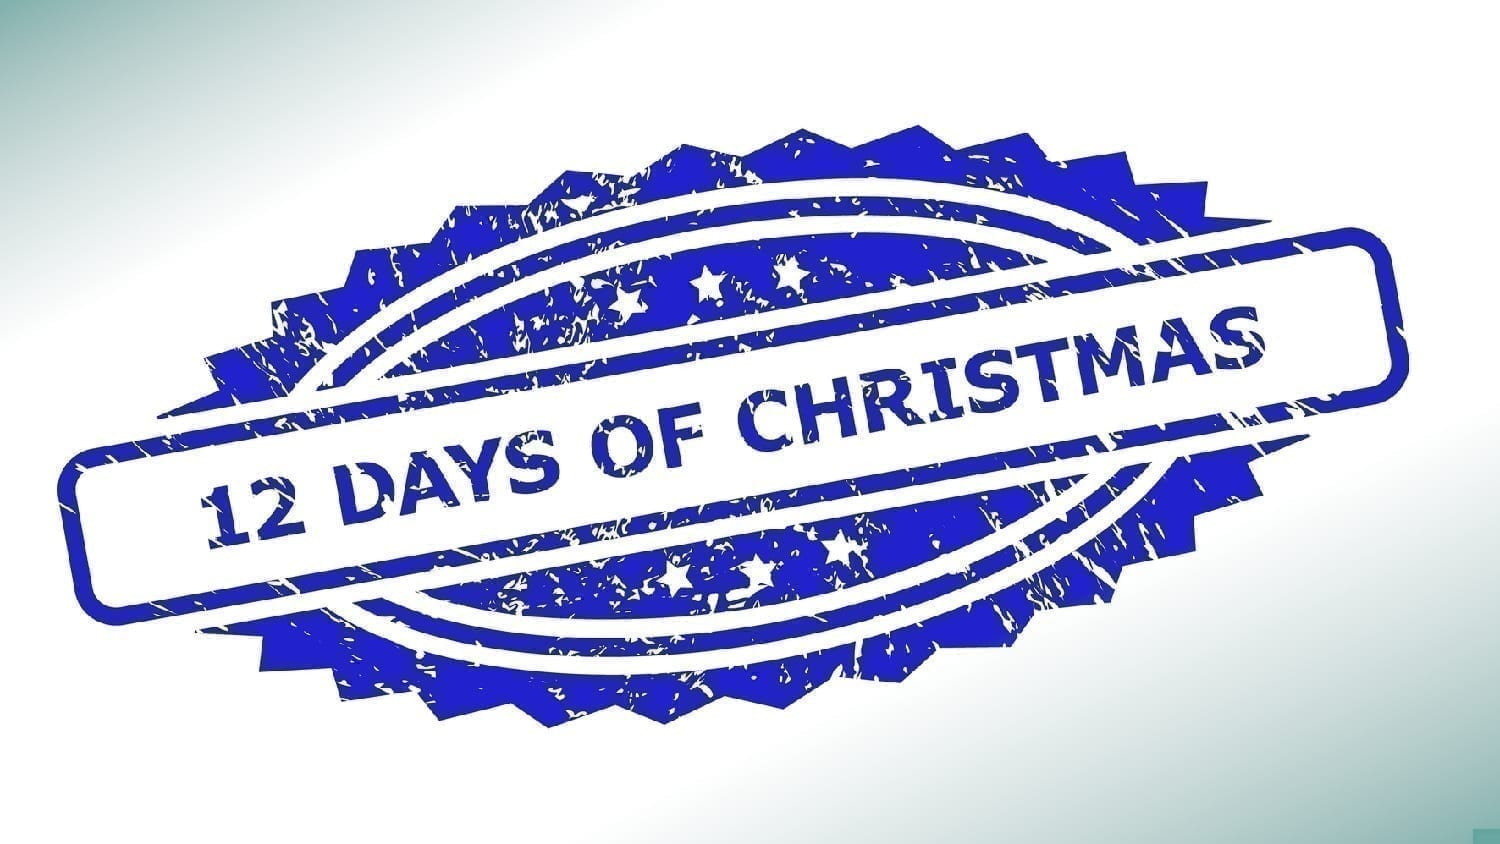 12 Days of Christmas logo: Illustration 195820839 © Ivan Karpov | Dreamstime.com